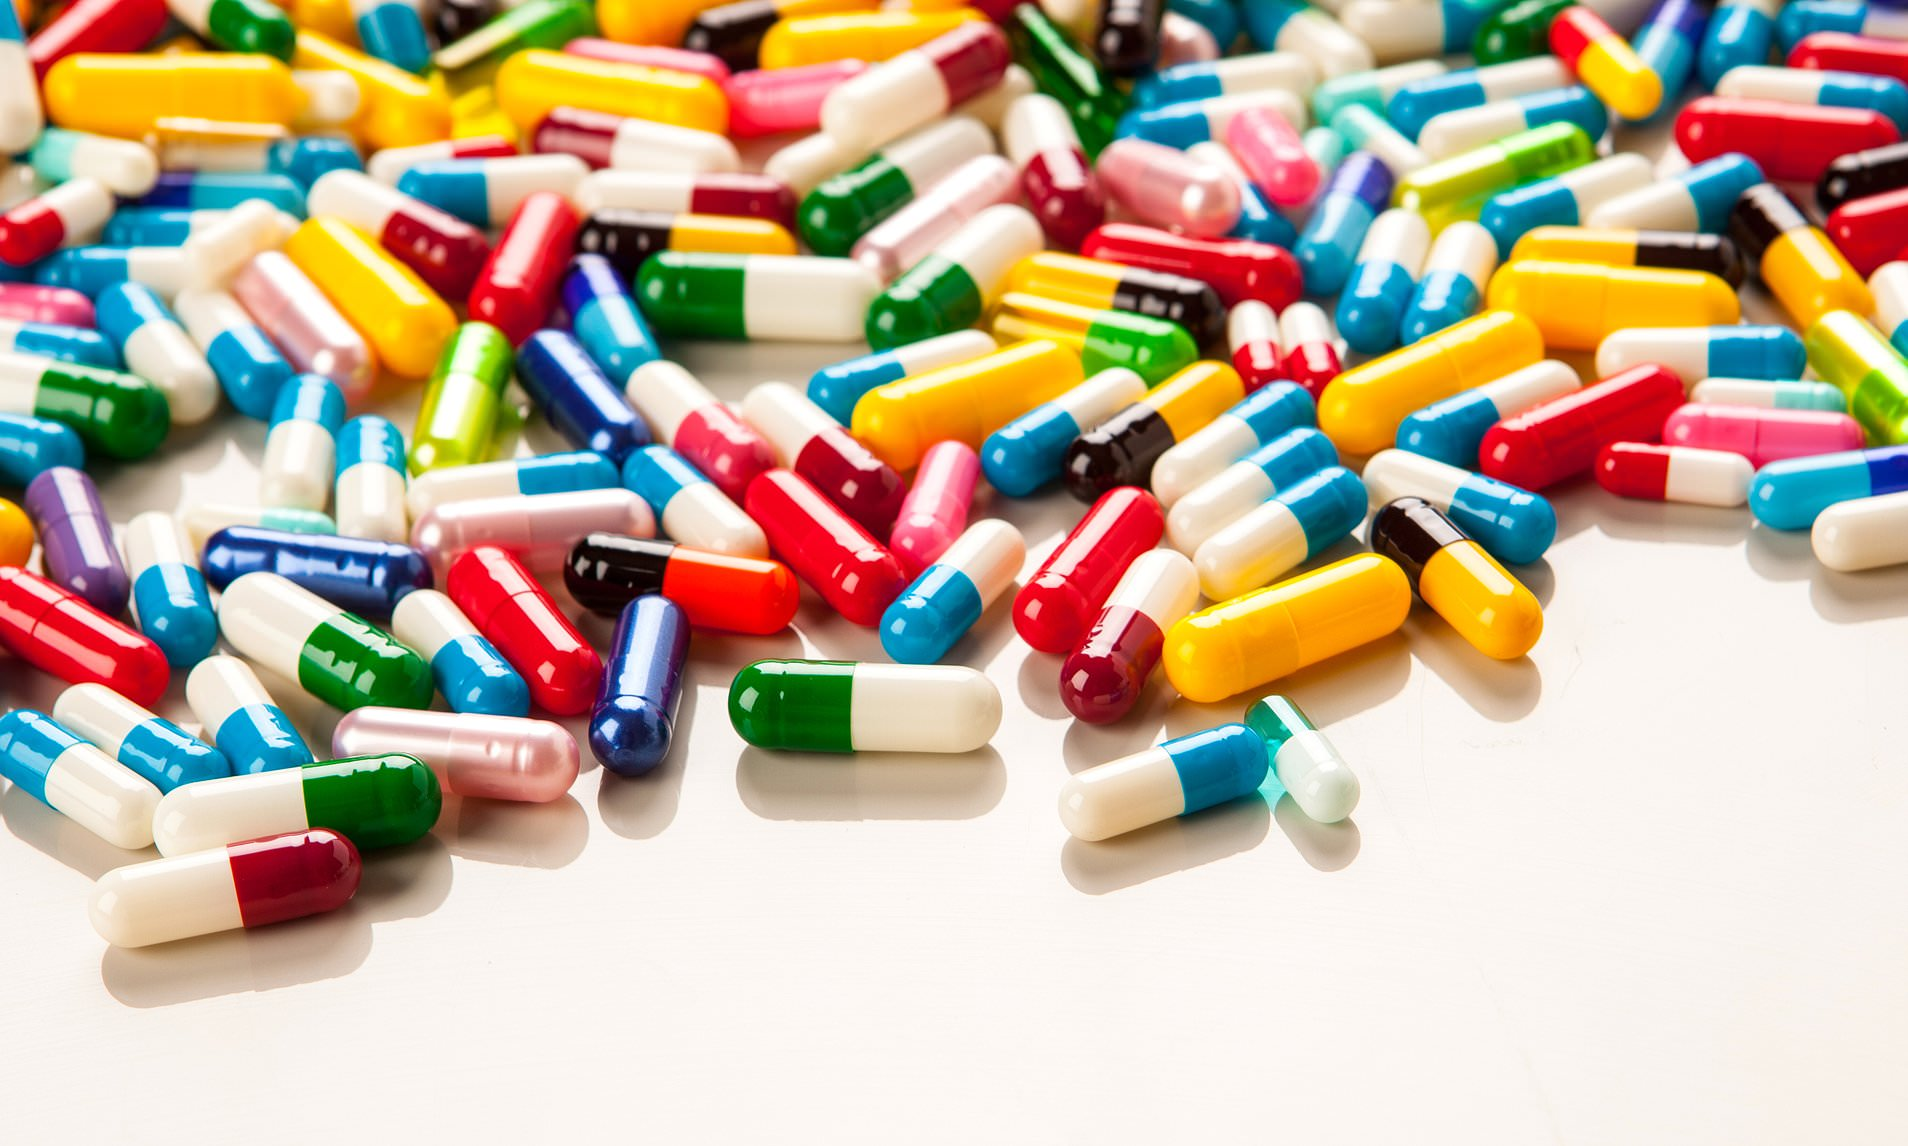 Surprising study that suggests you should take antidepressants... even if you are NOT depressed